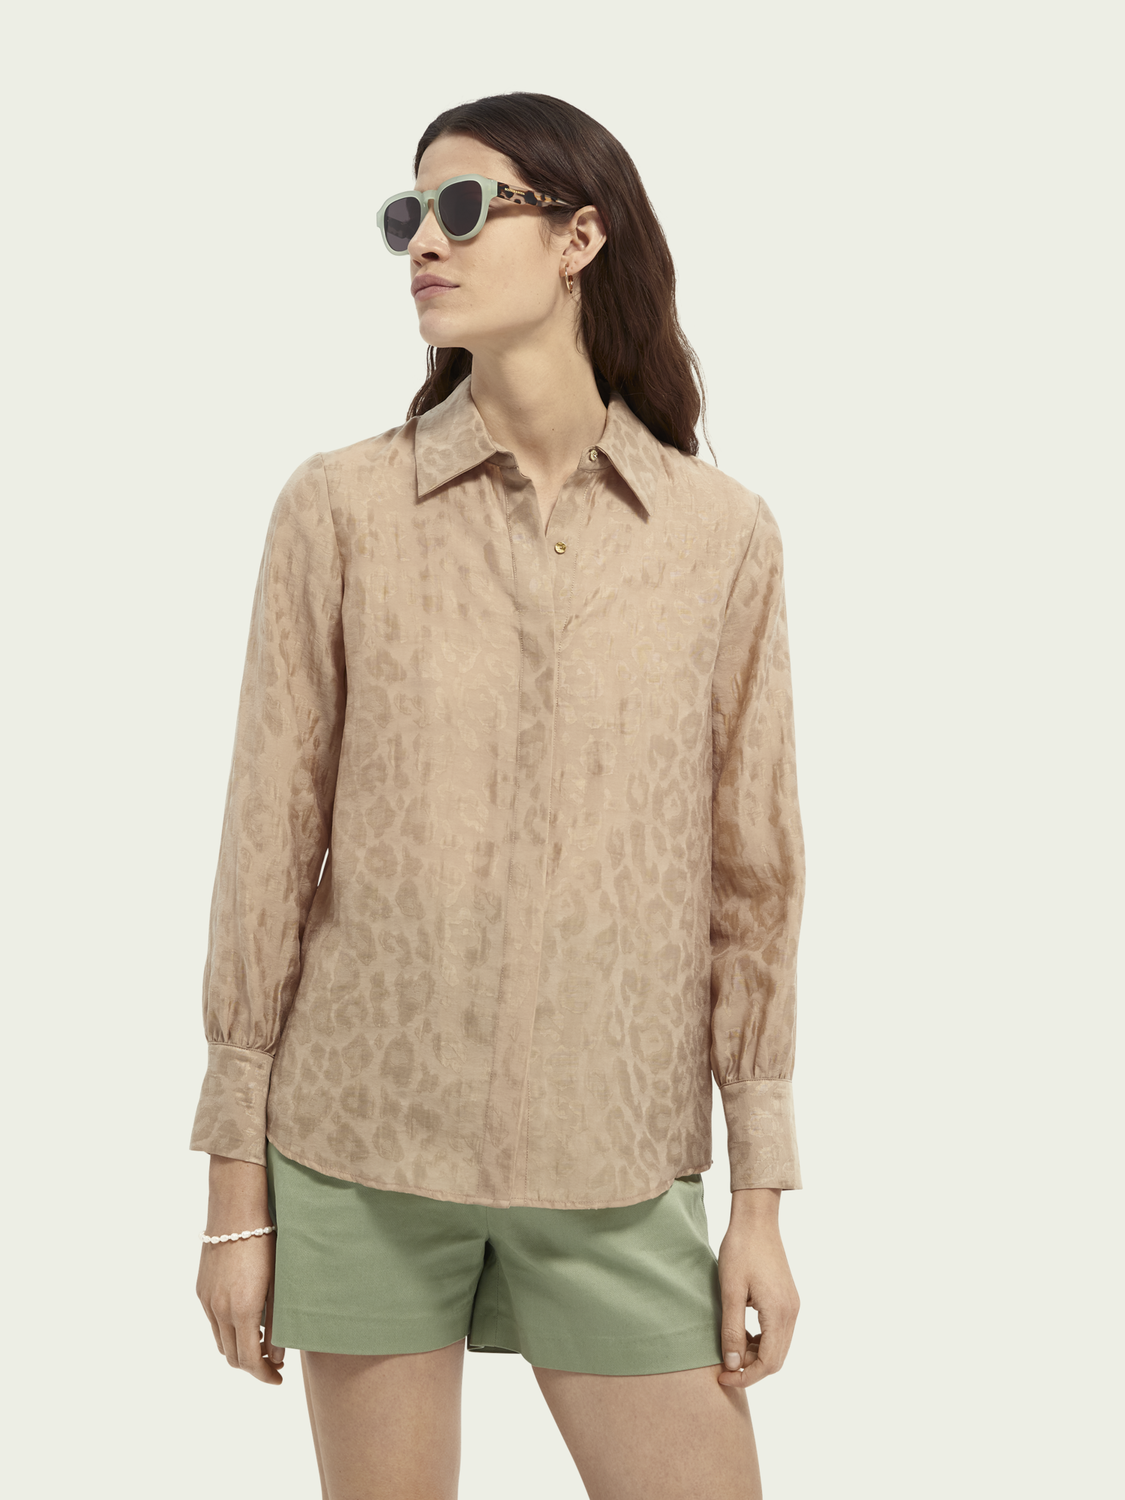 Dames Regular fit blouse met jacquard dierenmotief